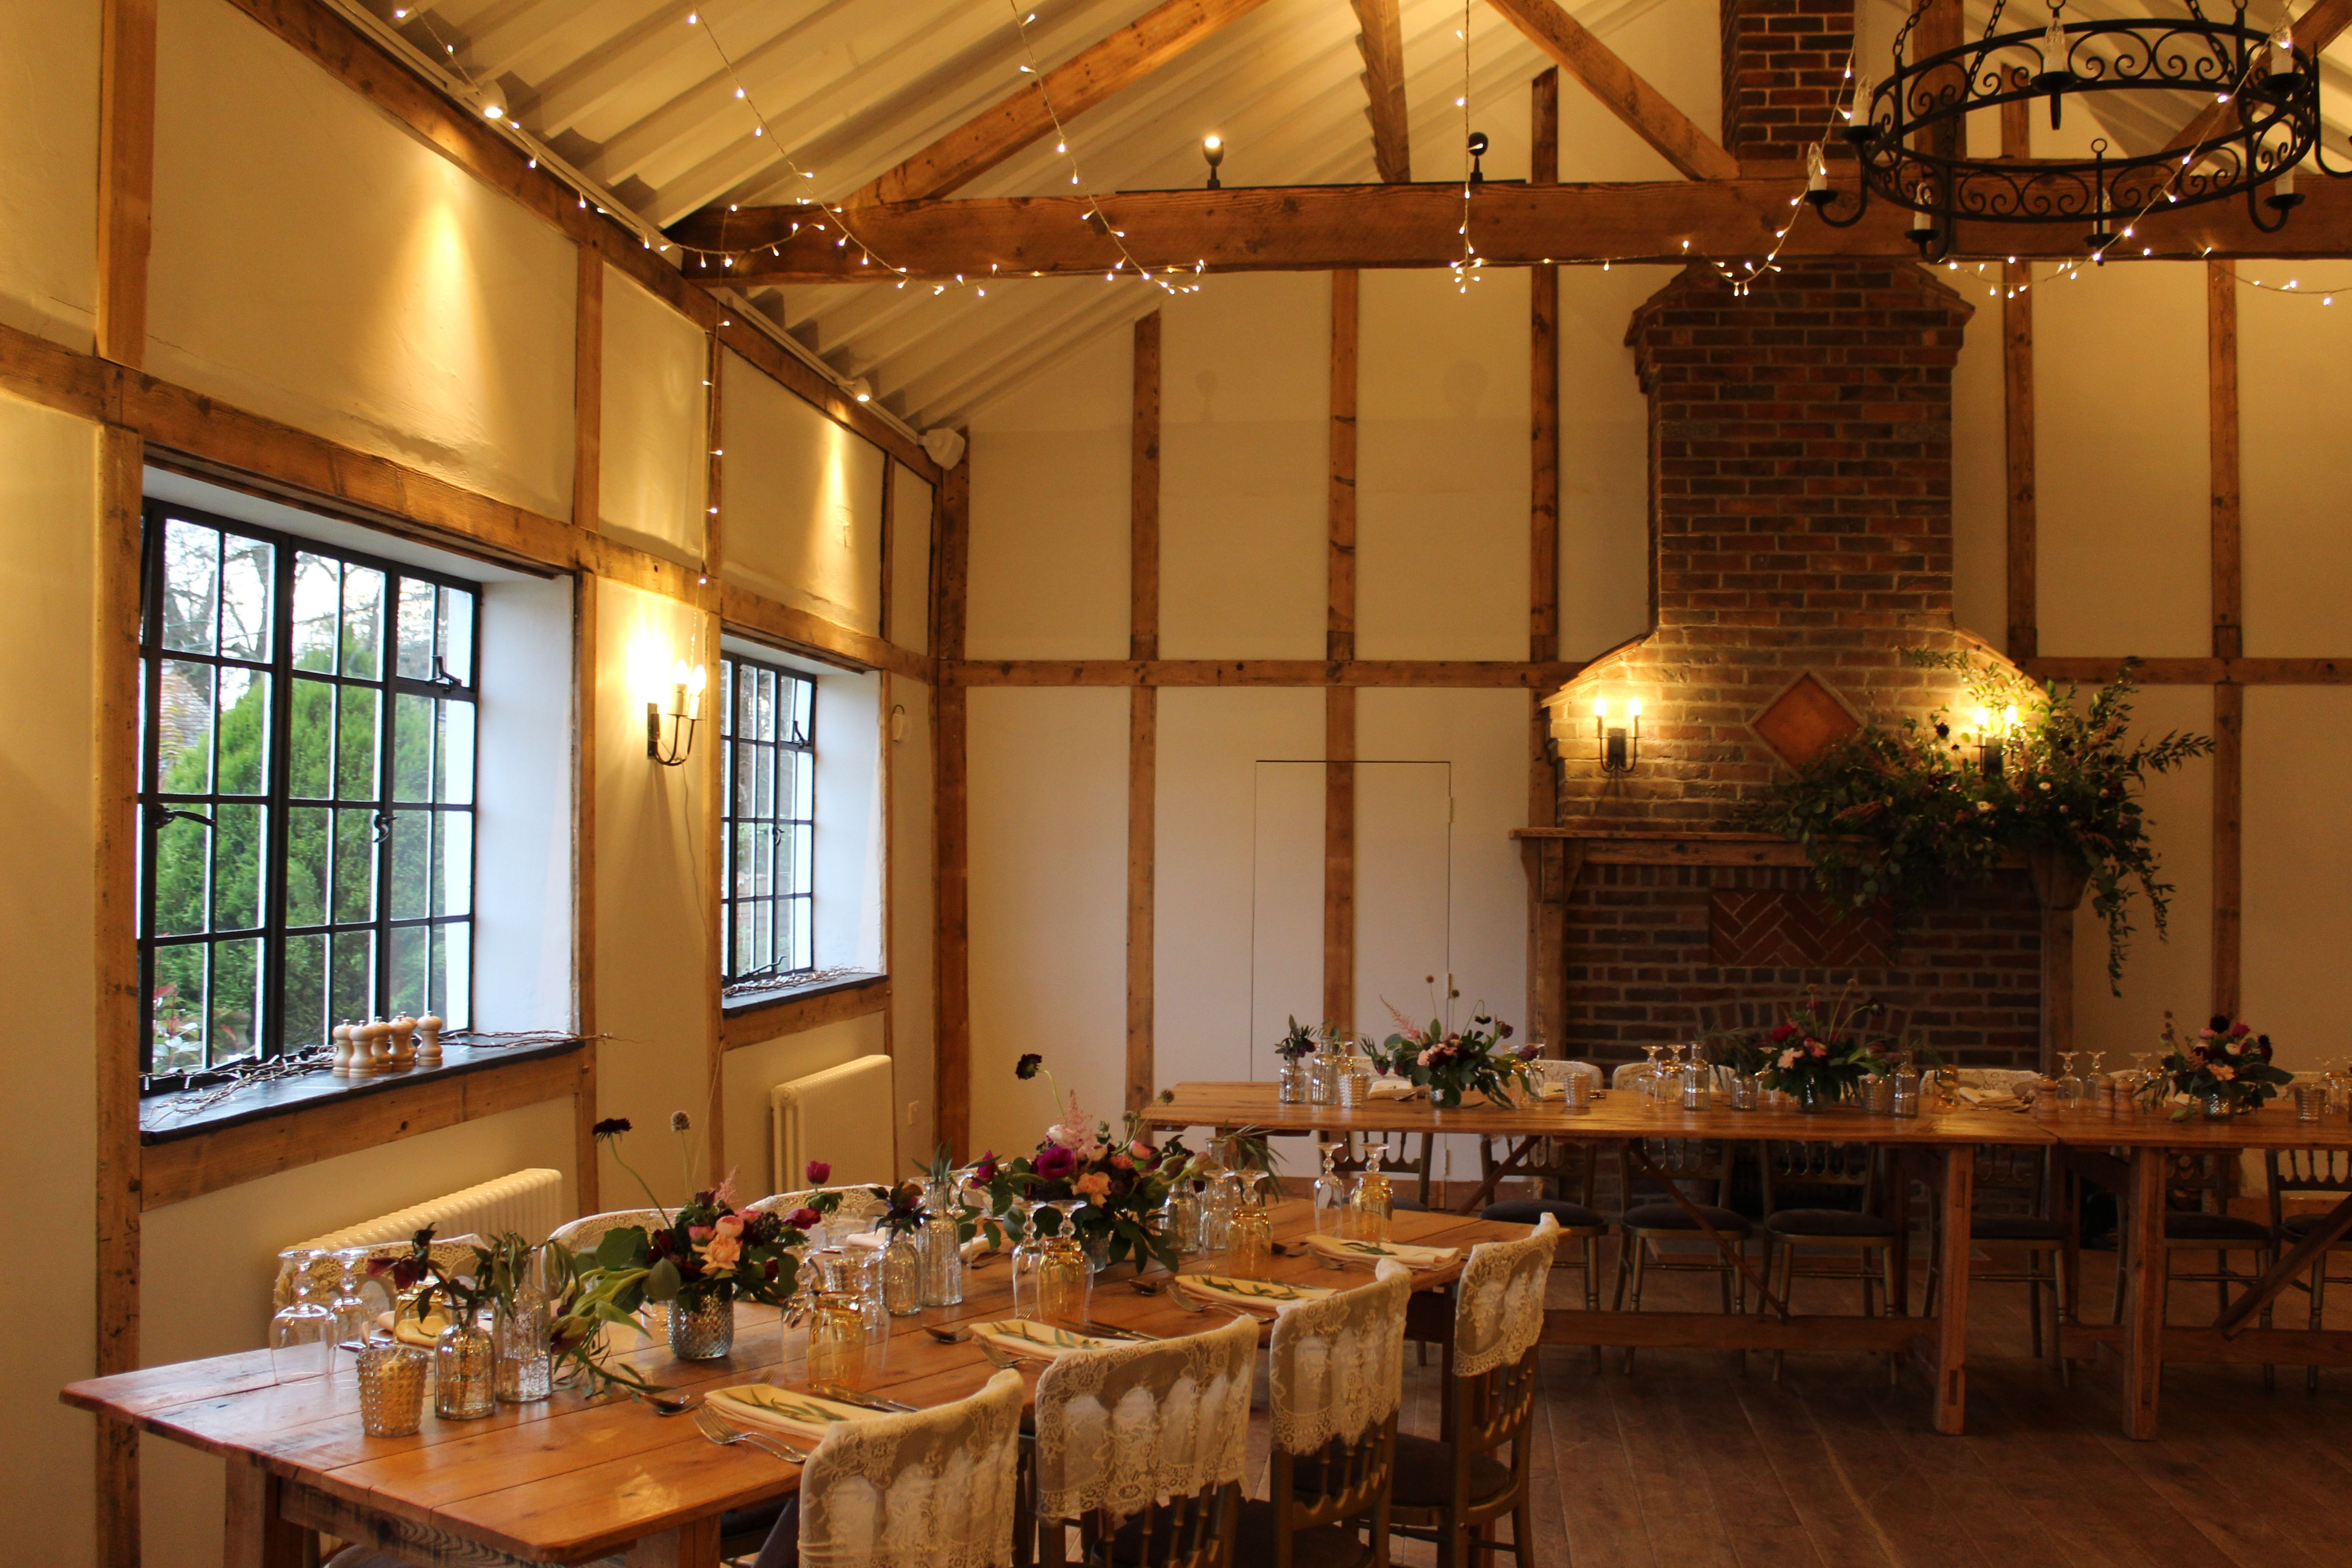 Barn wedding with fairy lights  Roaring fires and fairy lights draped across the ceiling make for